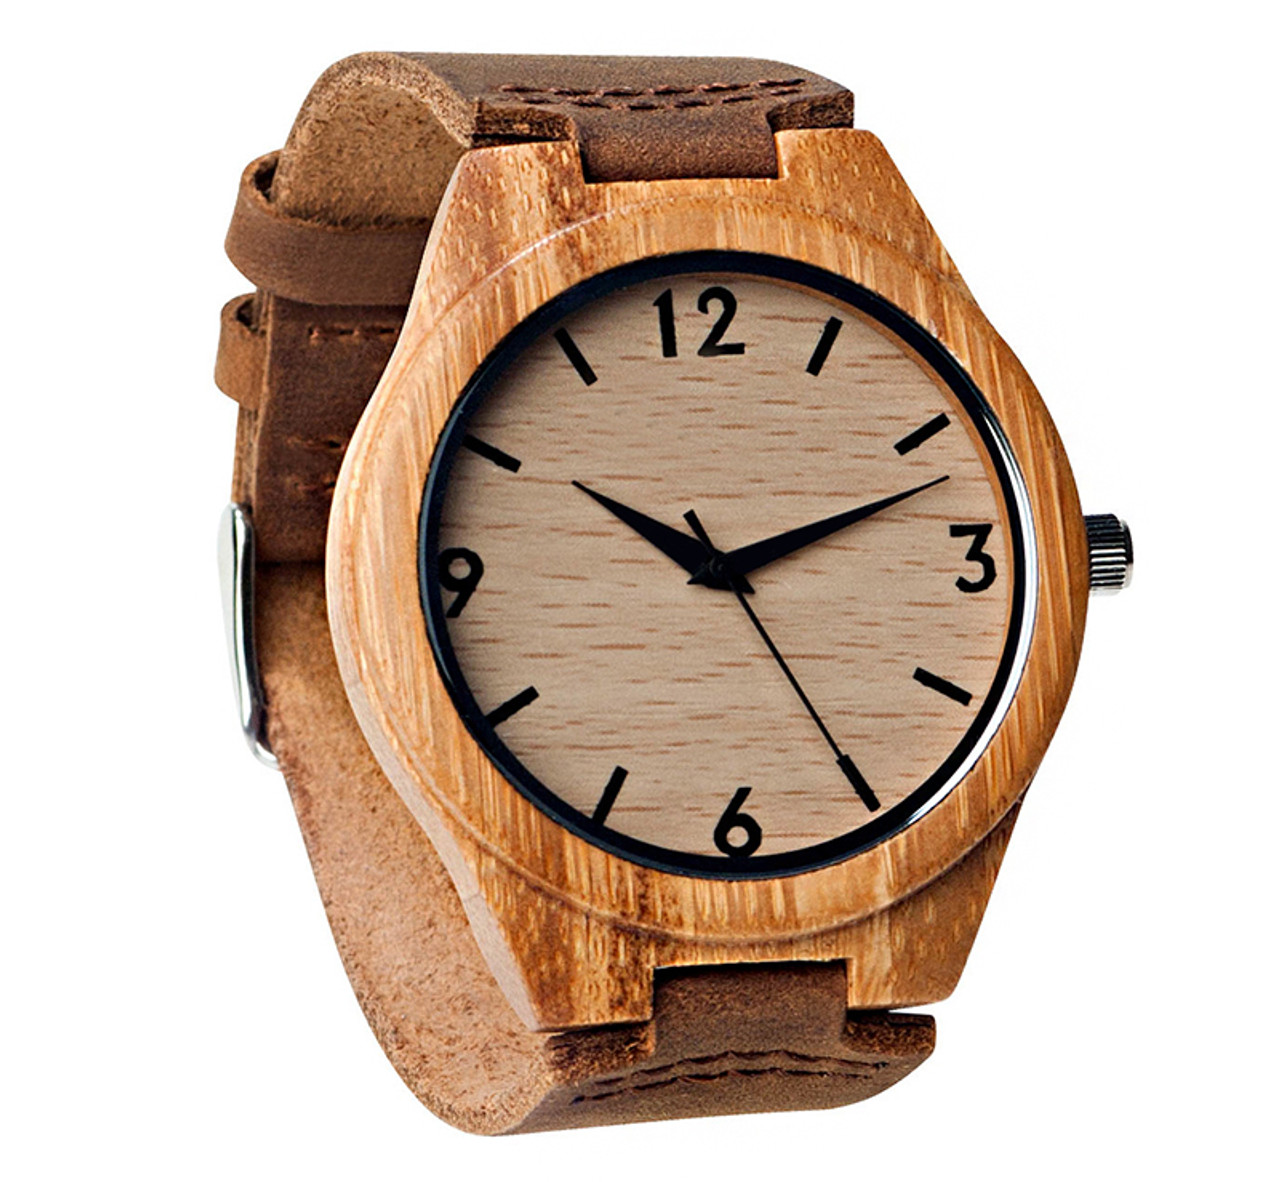 Grpn - Wood Engraved Watch W#67 - Rival